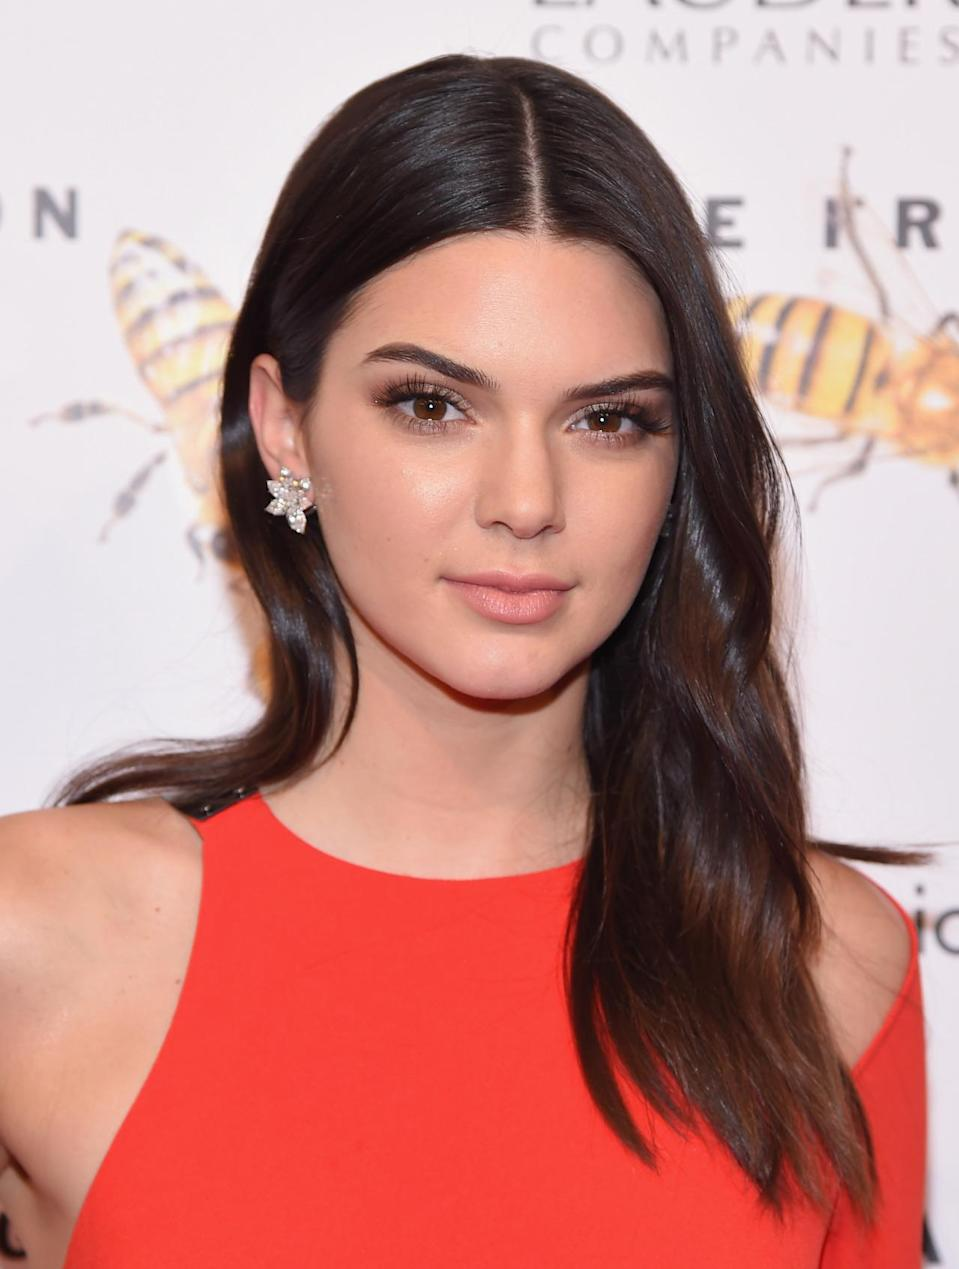 <p>At the Fragrance Foundation Awards in New York City, Jenner kept her makeup minimal with enviably shiny brunette locks. <i>(Photo: Getty Images)</i></p>